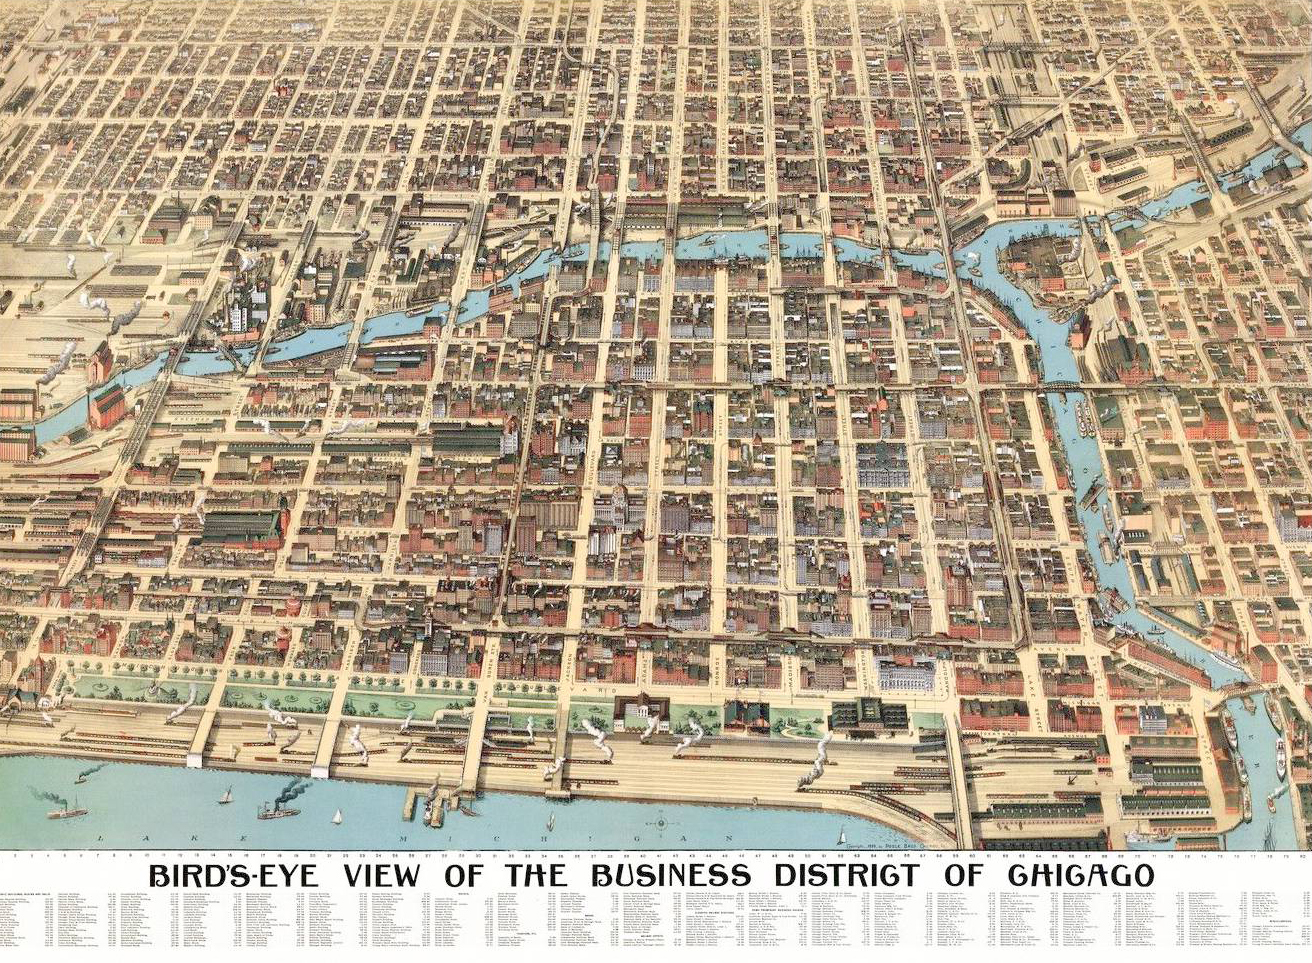 An 1898 map (with north oriented to the right) shows the area bounded by the Chicago River on the north and west, Lake Michigan on the east, and Roosevelt Road on the south start to develop as a central business district. (Courtesy Chicago History Museum, ichi-14892)